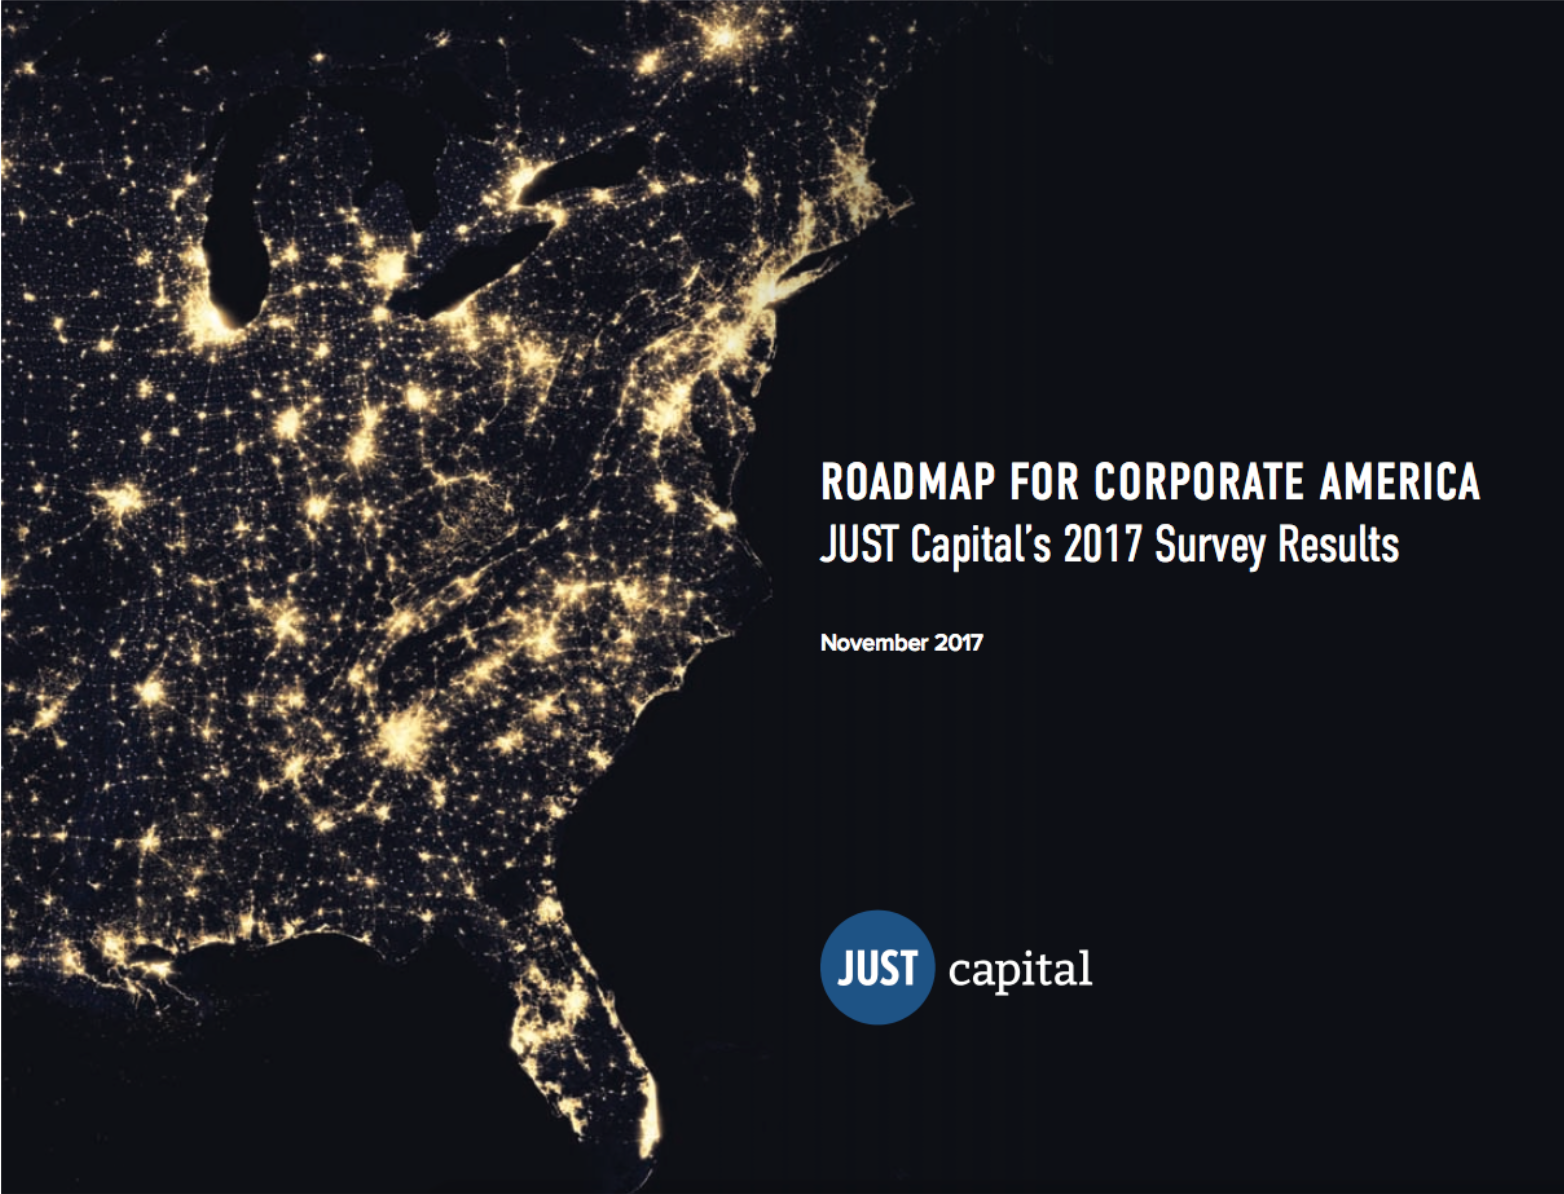 JUST Capital's 2017 Survey Report